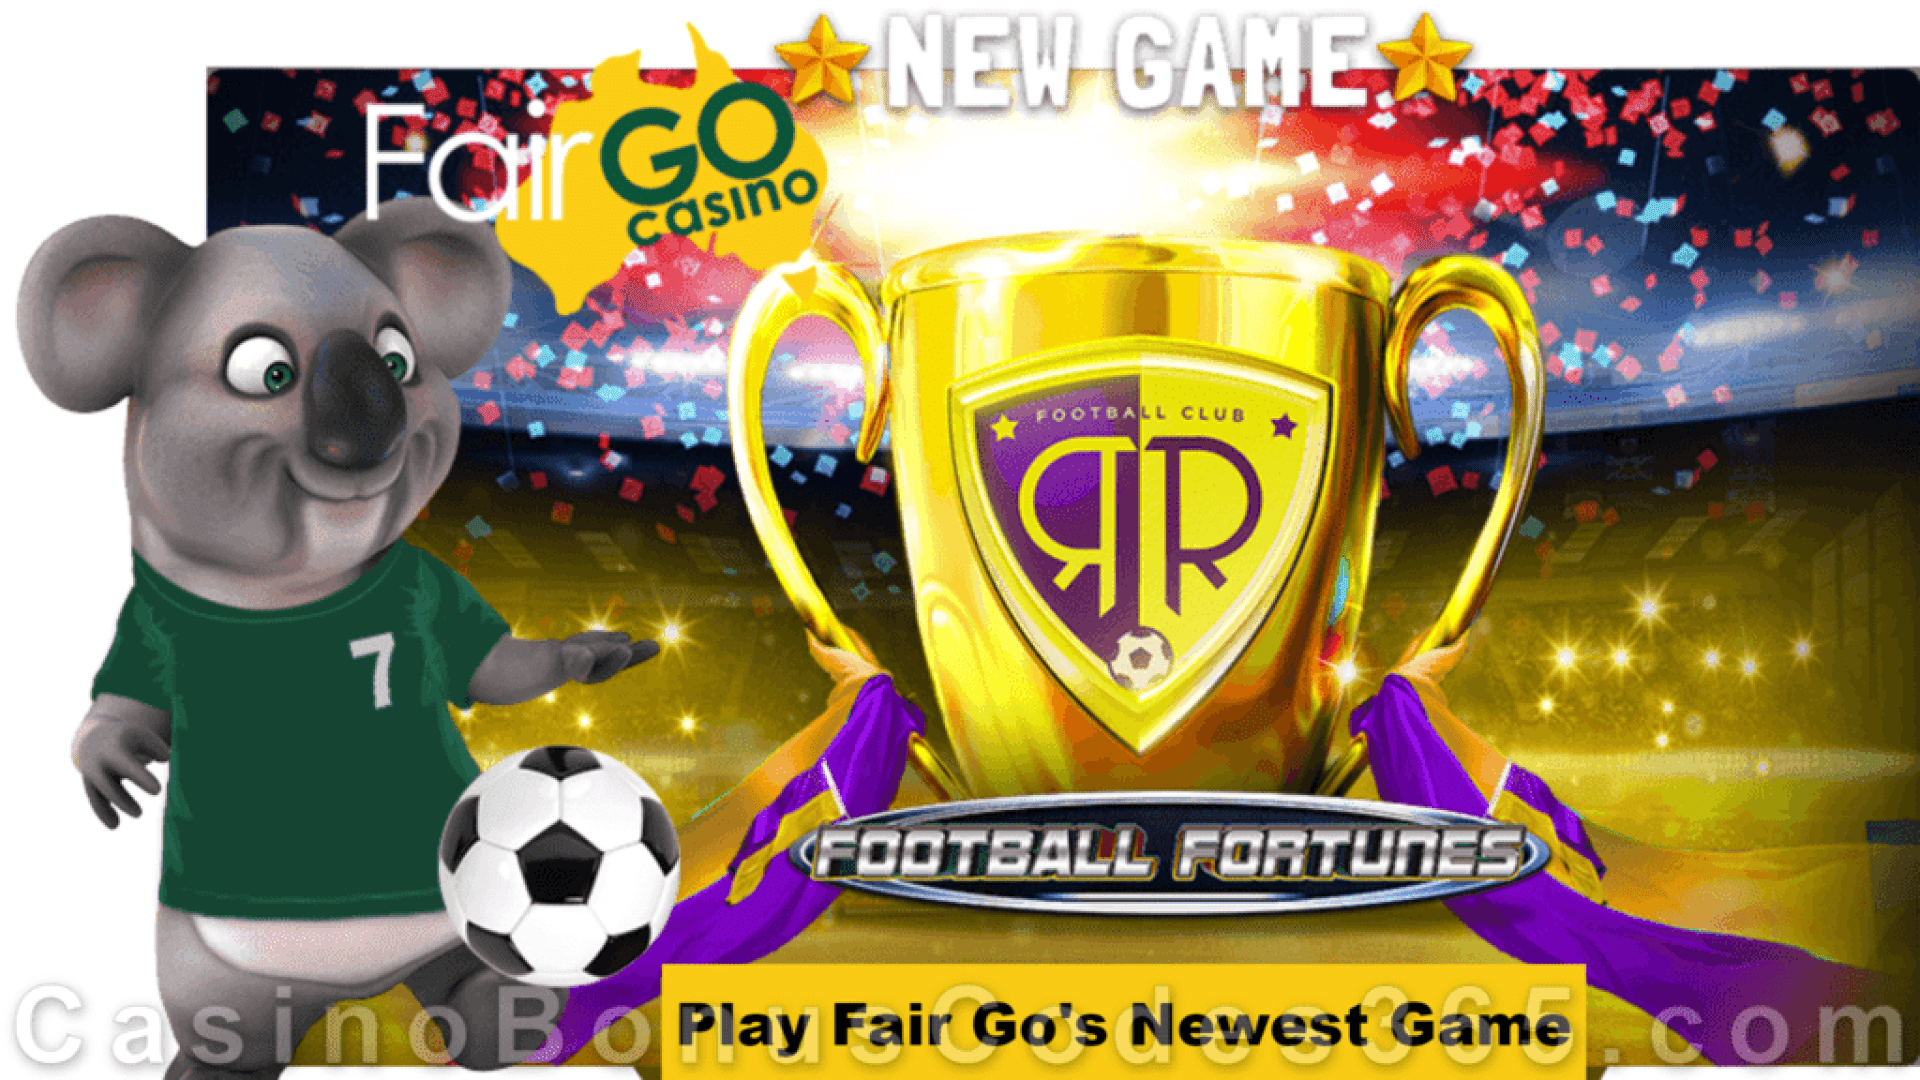 Fair Go Casino New RTG Game Football Fortunes is LIVE